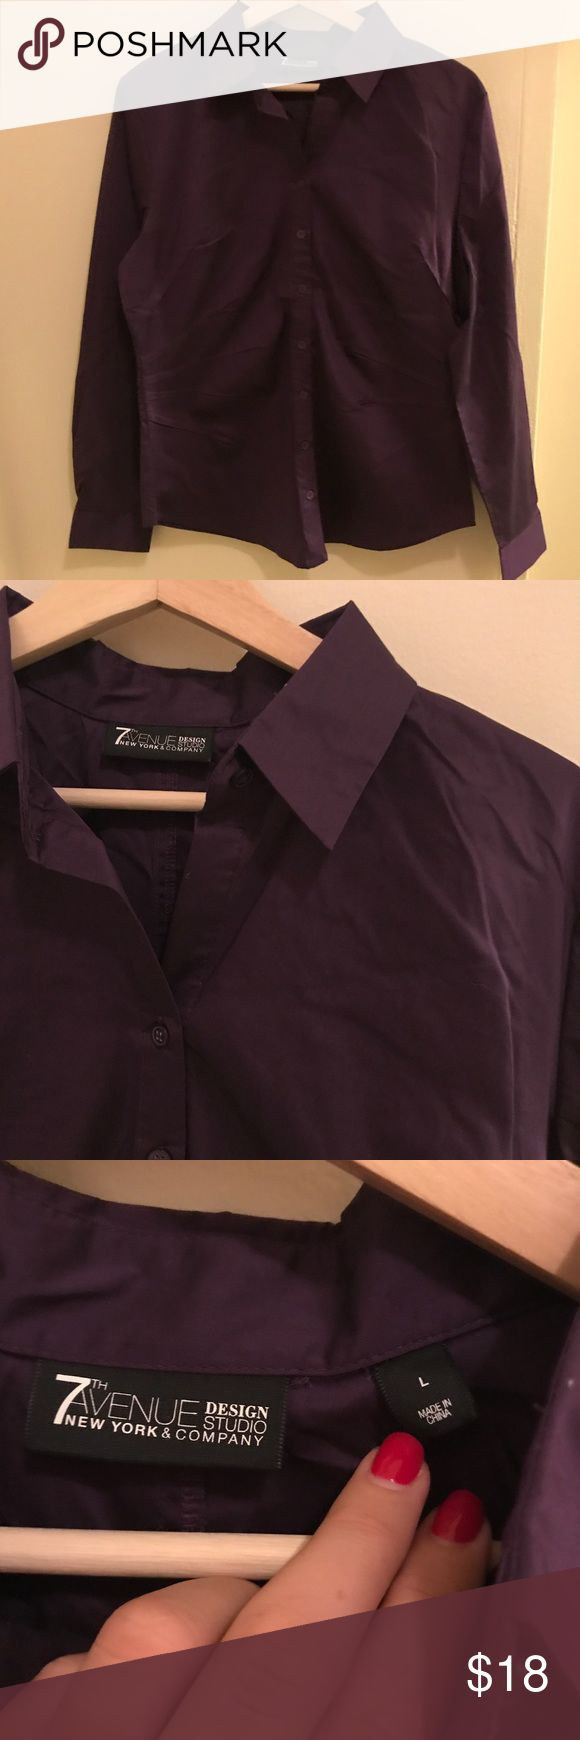 Purple NY&Co dress shirt Perfect condition purple dress shirt from New York and company 7th avenue design studio. It has cute gathering detail on the sides that is super flattering. New York & Company Tops Button Down Shirts